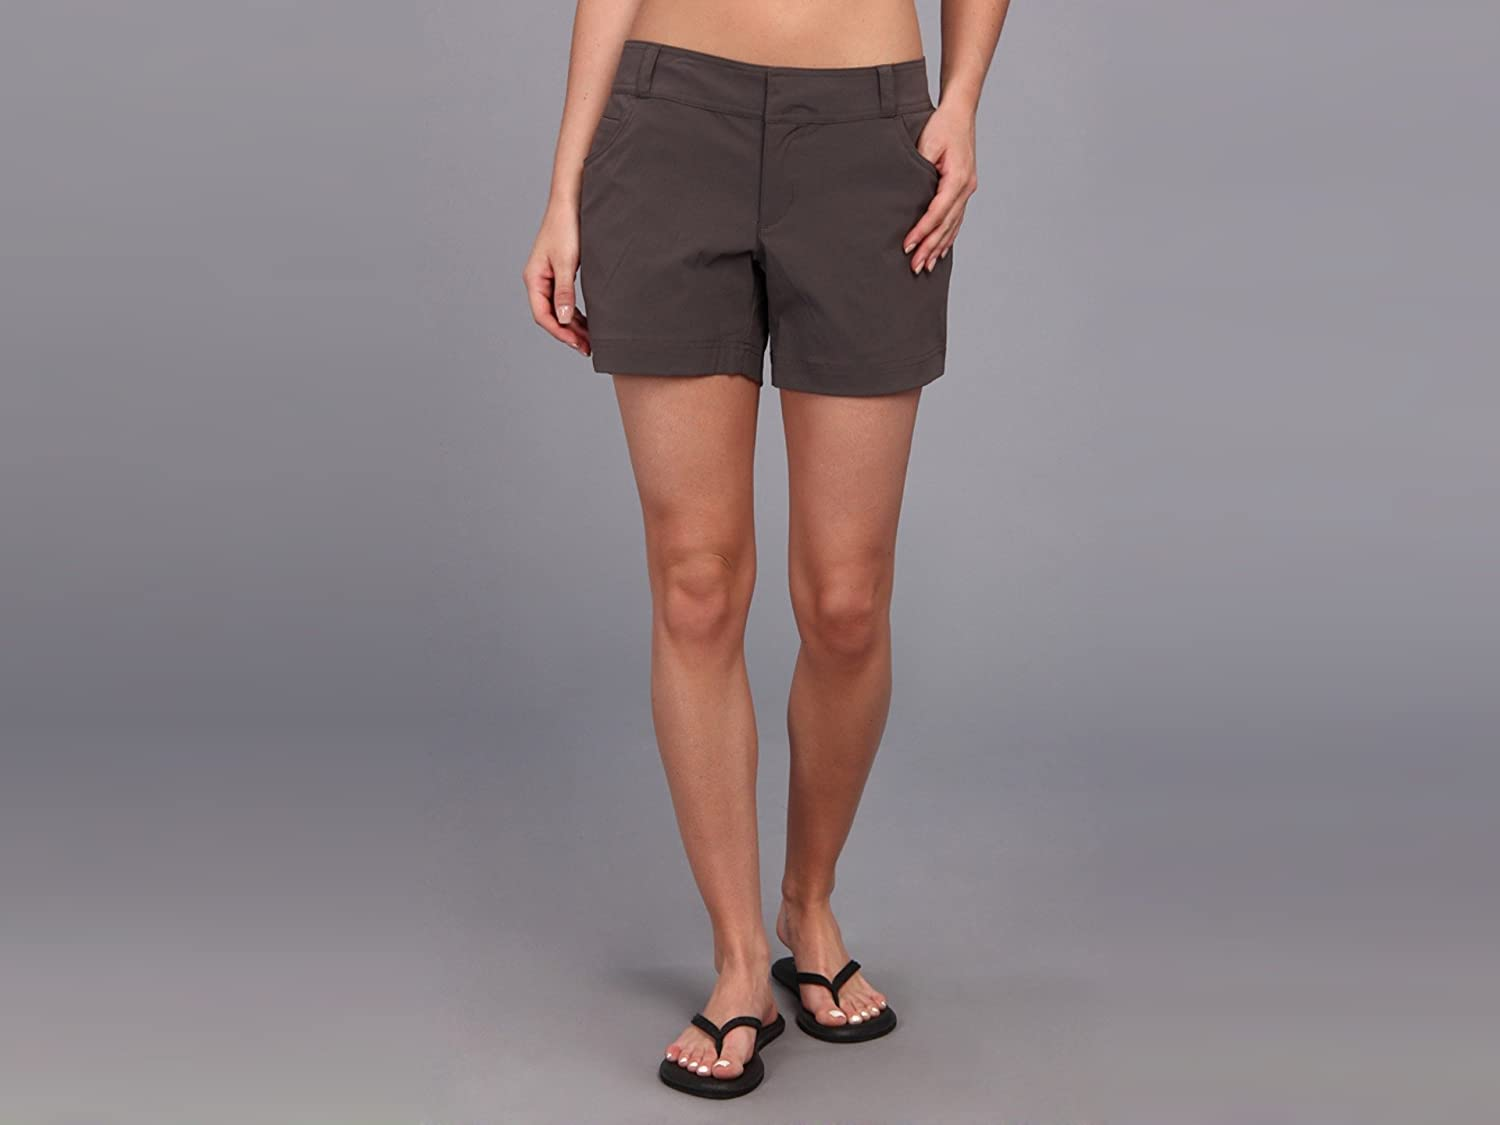 Merrell Women's Chancery Max lowest price 87% OFF Shorts